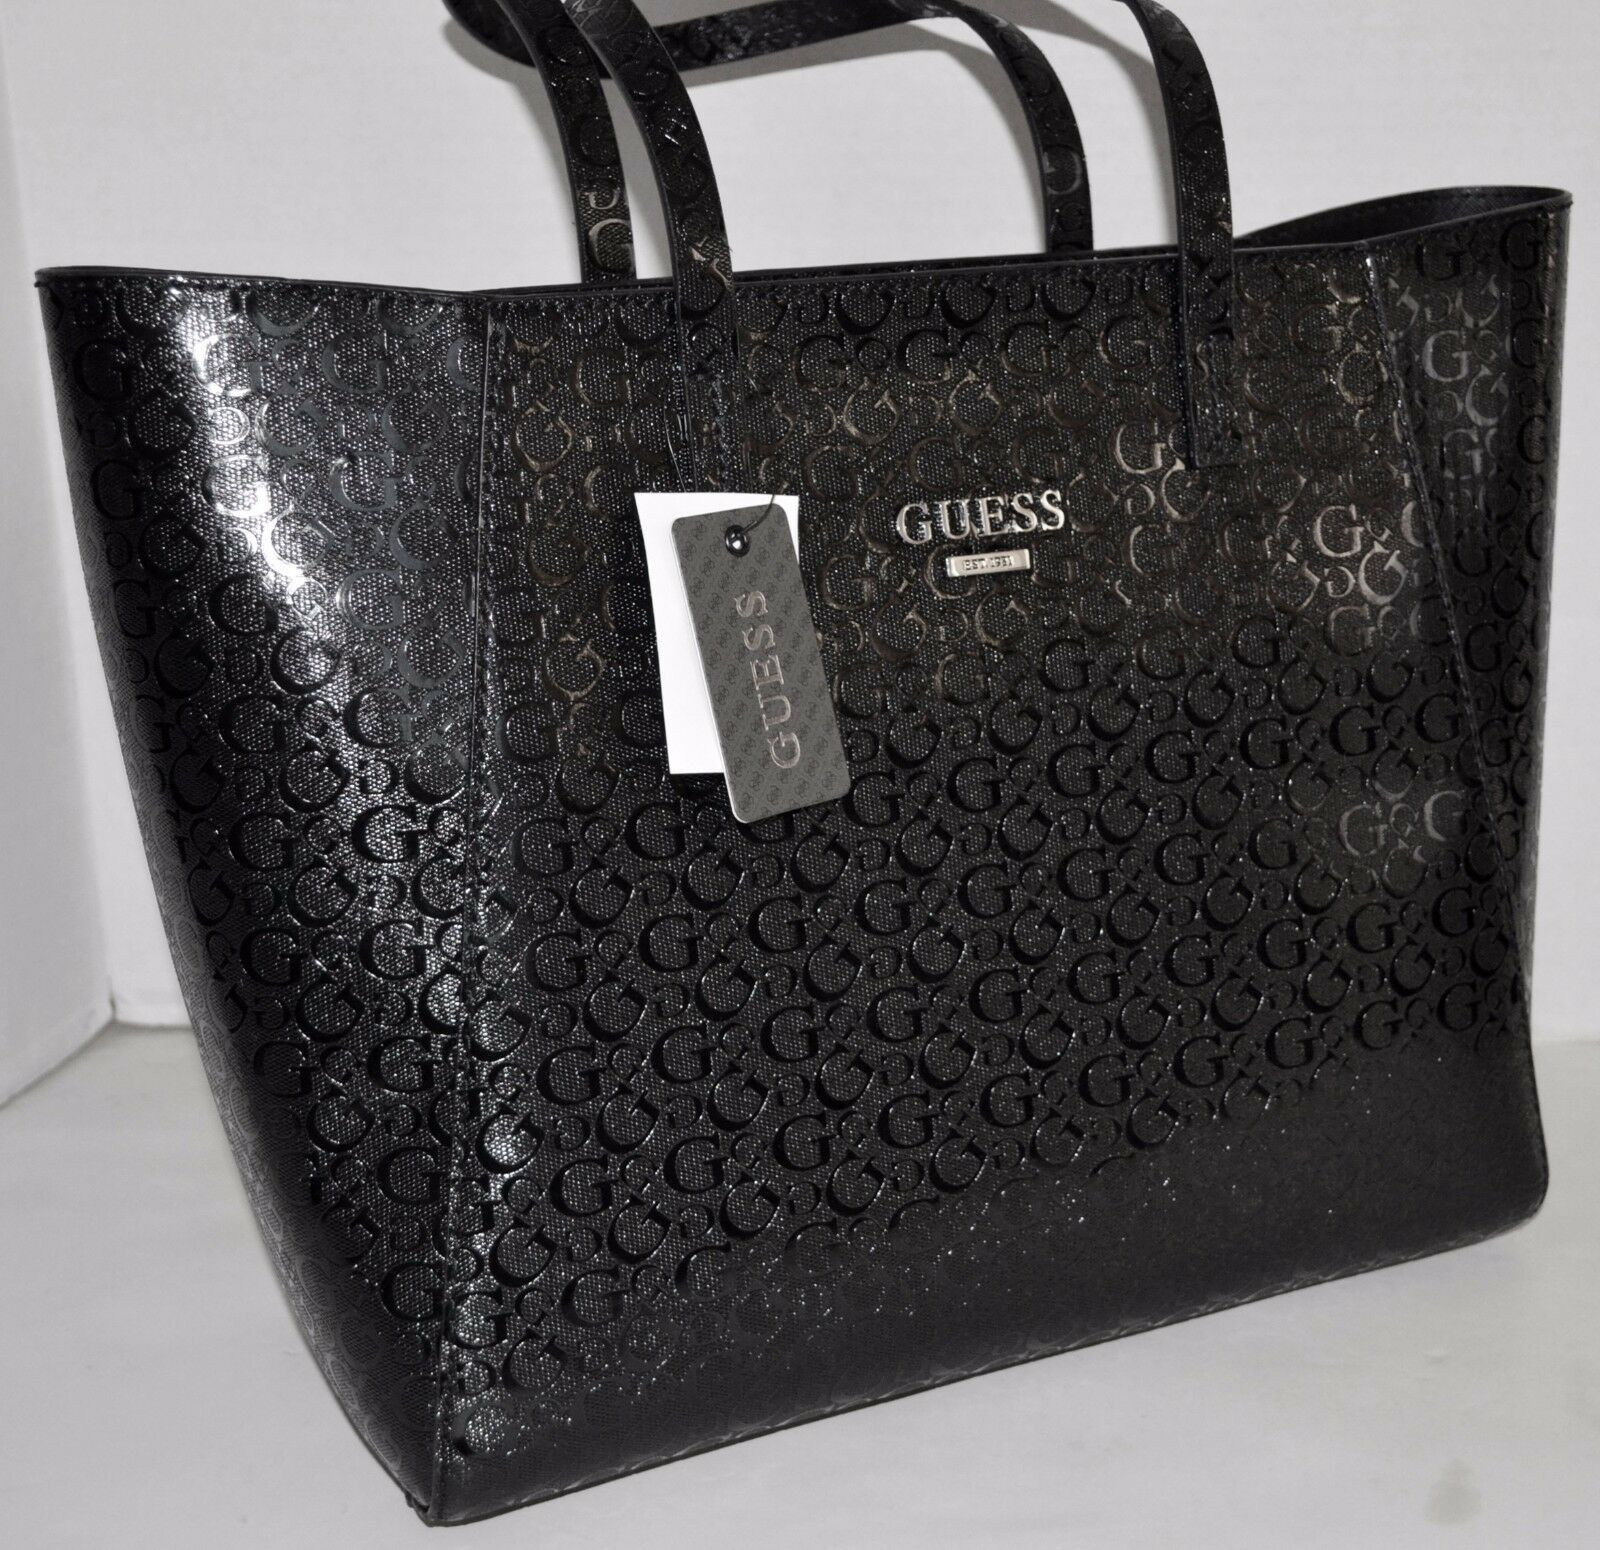 f88916da9657 GUESS Liberate Tote Handbag Signature Embossed Black for sale online ...